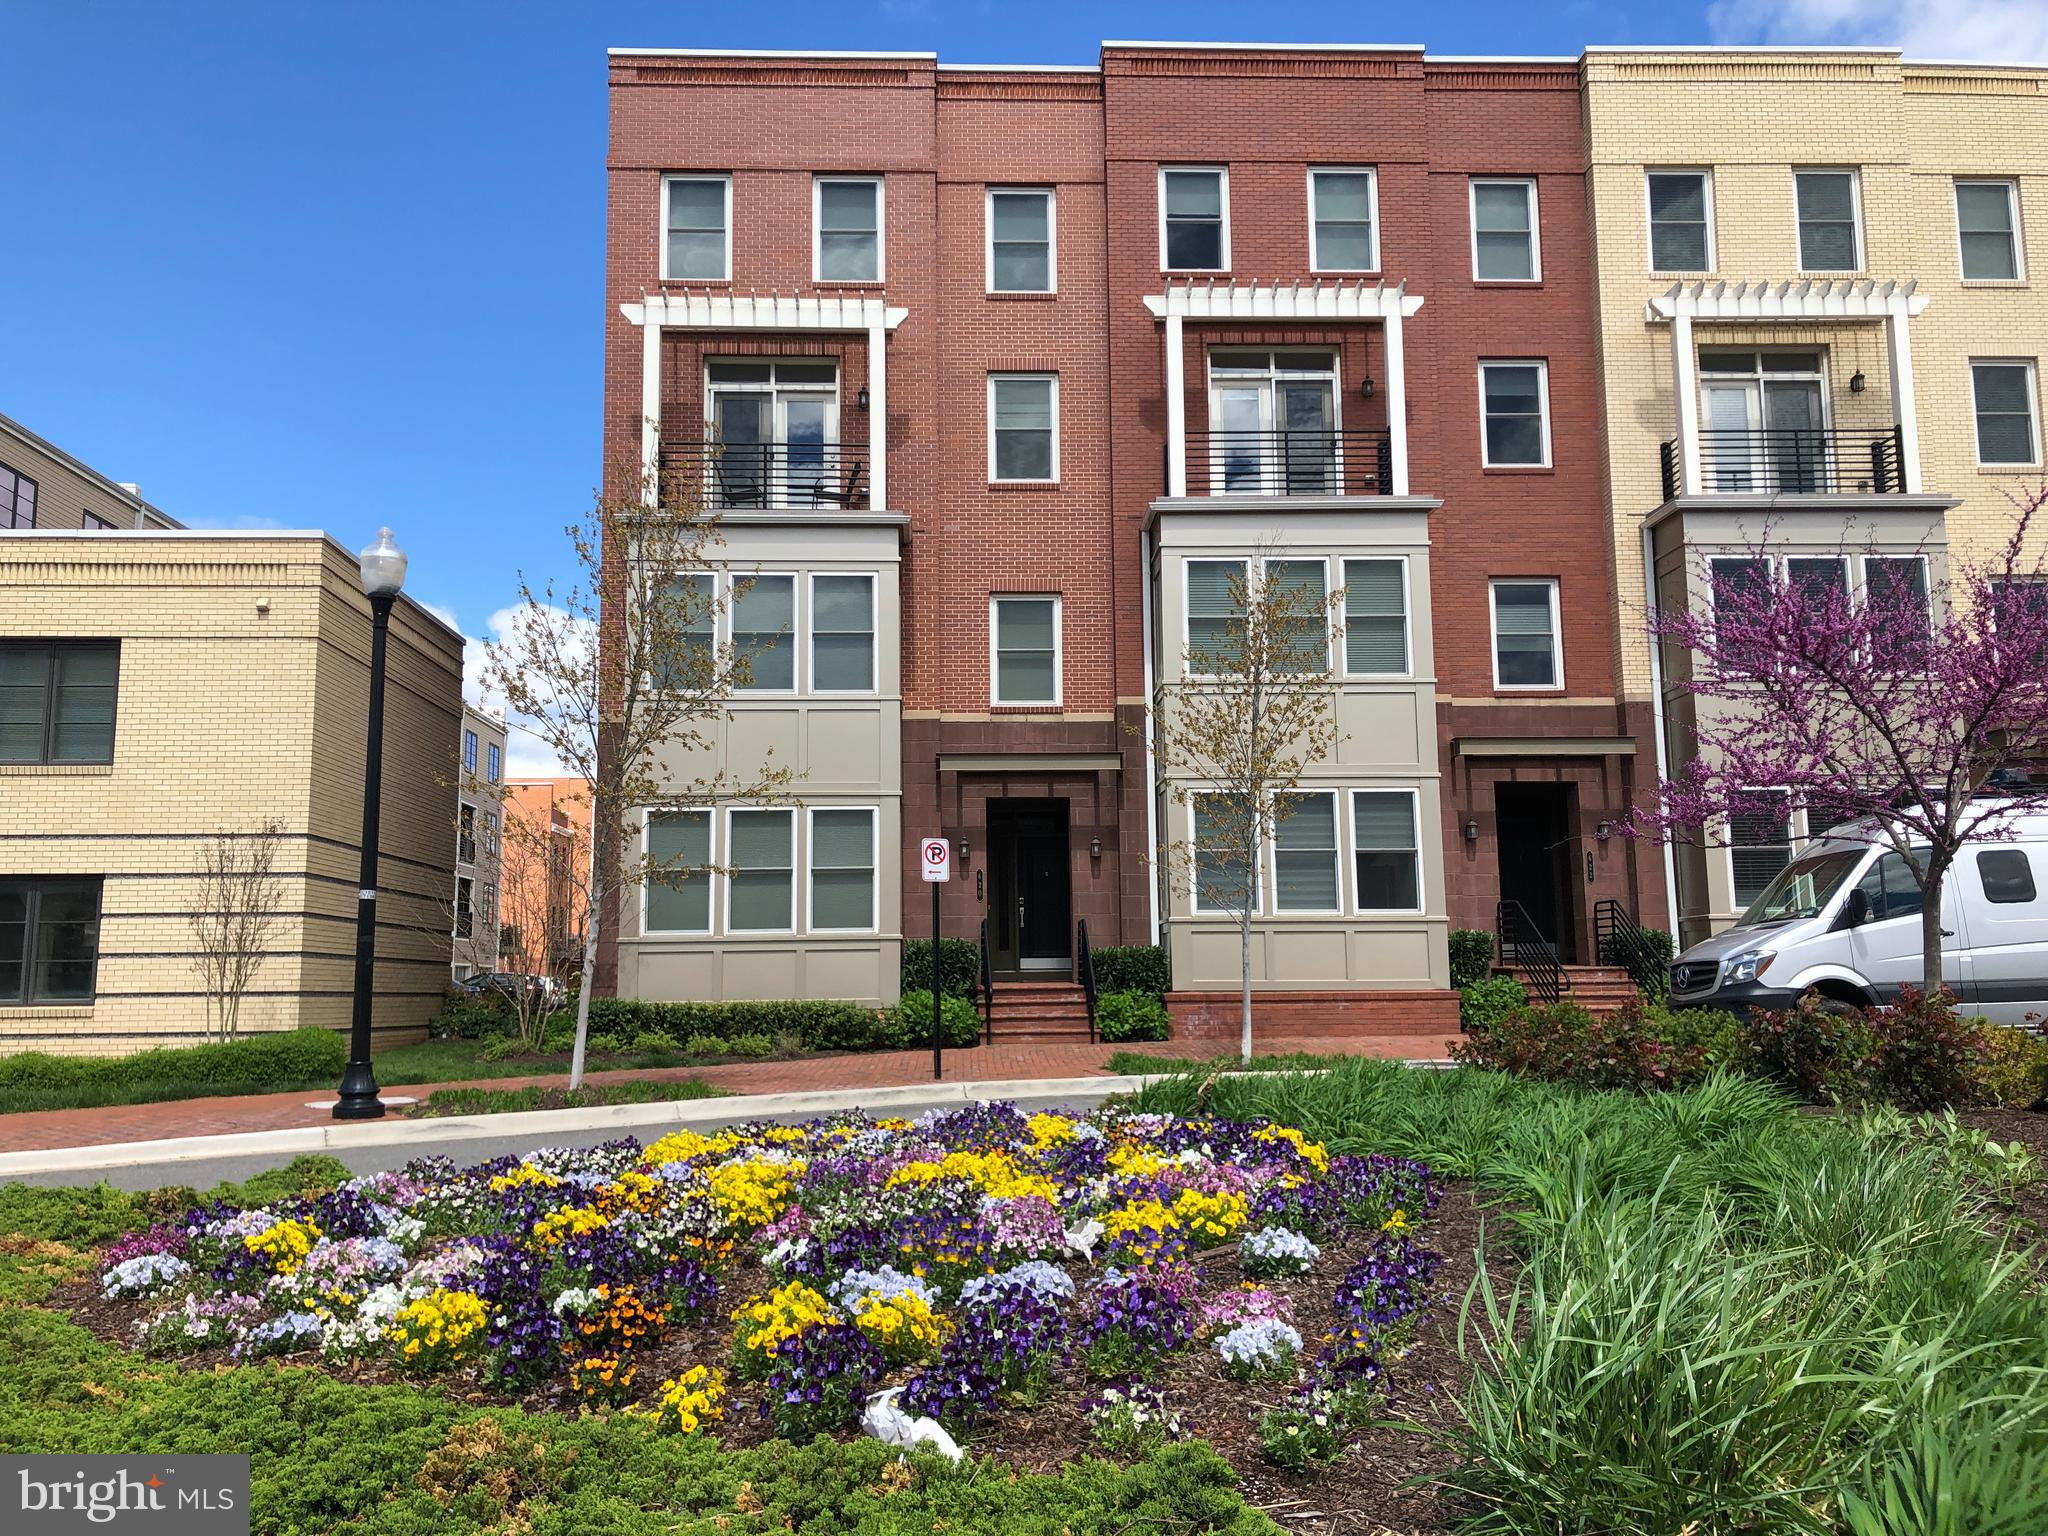 """Location!.- This Large and bright 3 Bed/2.5 Bath END unit -5 year old construction - is conveniently located, close to Braddock Metro, a block away from the bus """"Metroway"""" to Crystal City, future home of the Amazon headquarters. Only 4 blocks away from the """"The Avenue"""" in Del Ray Alexandria with restaurants like Evening Star and Del Ray Cafe plus shopping. This townhome/condo built in 2014 has state of the art appliances, high ceilings, two private balconies, and private garage. The large Master suite includes a huge walk-in closet. Large open kitchen/family room area with two-sided gas fireplaces onto Dining/Living Room space. The famous Potomac Yard park with it's Famous Children's playground and tennis courts is only blocks away. Don't miss this opportunity to own in this community."""